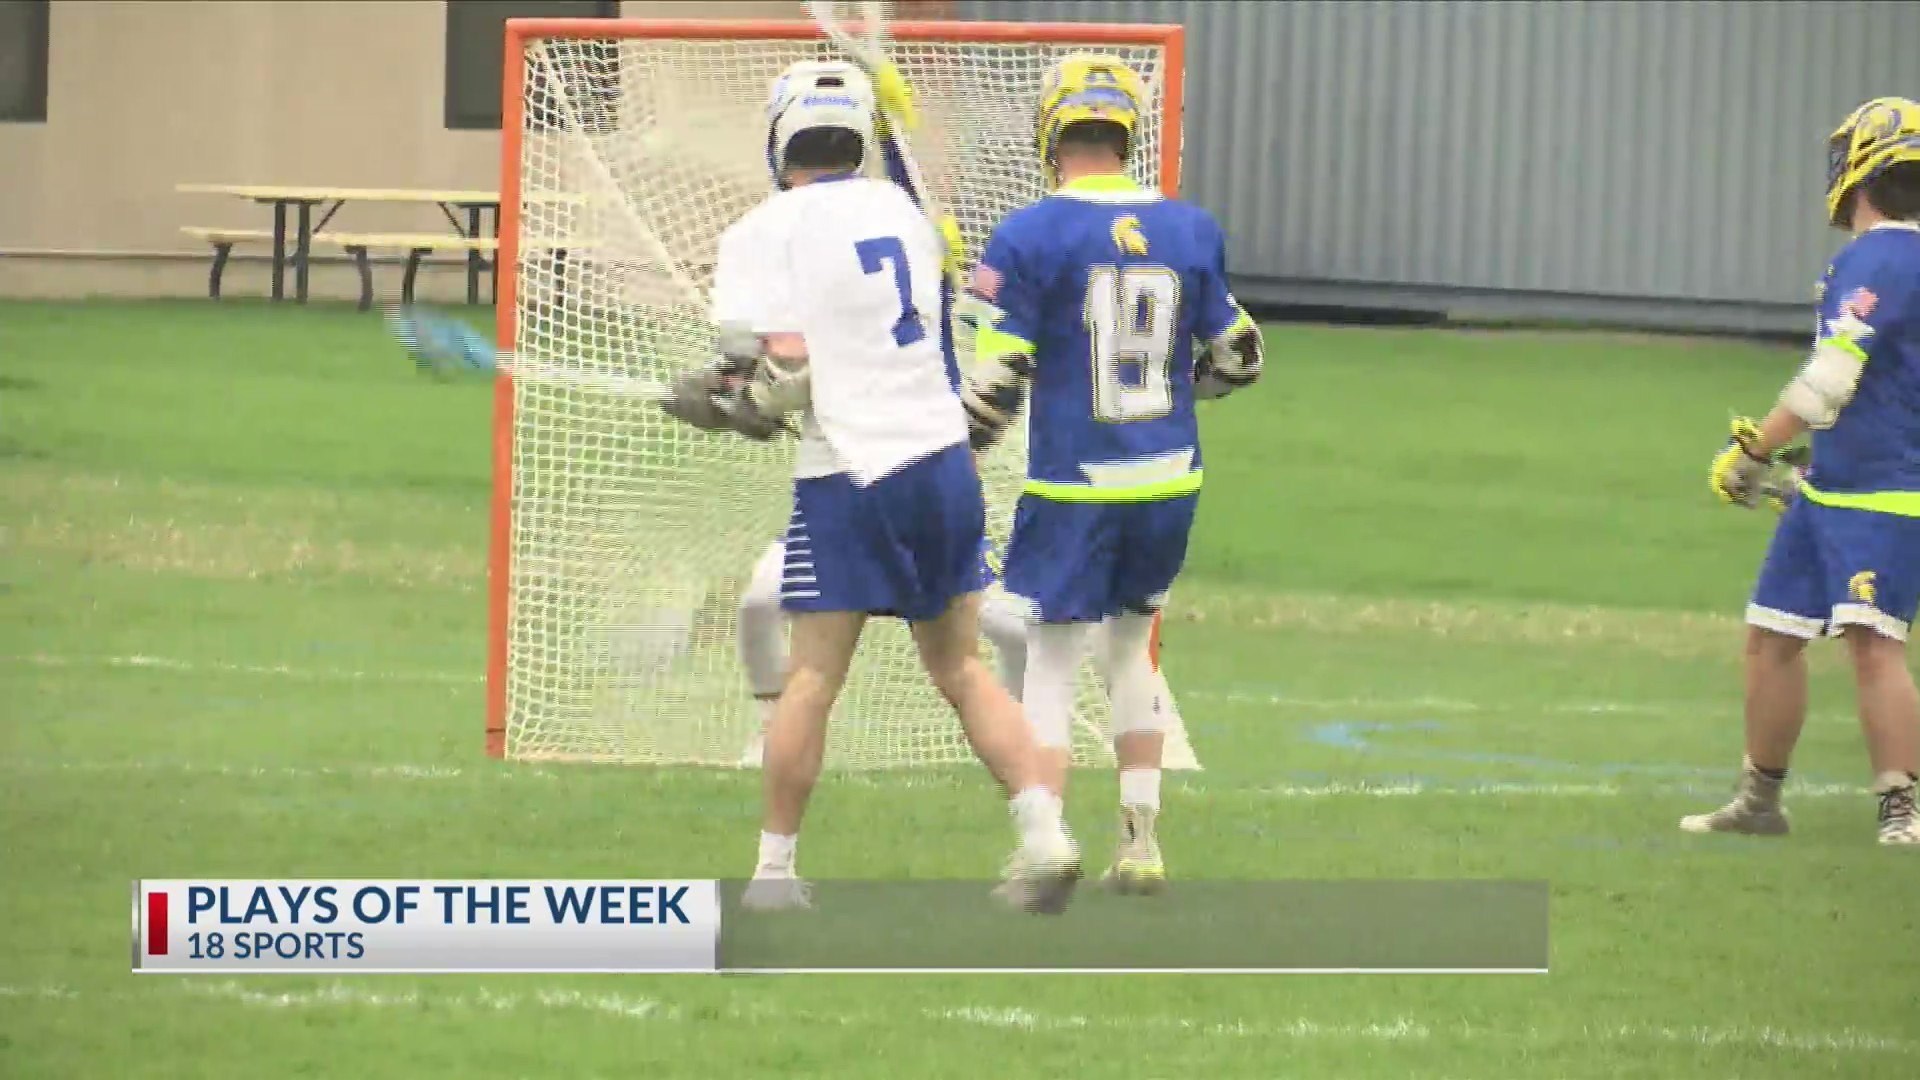 18 Sports Plays of The Week